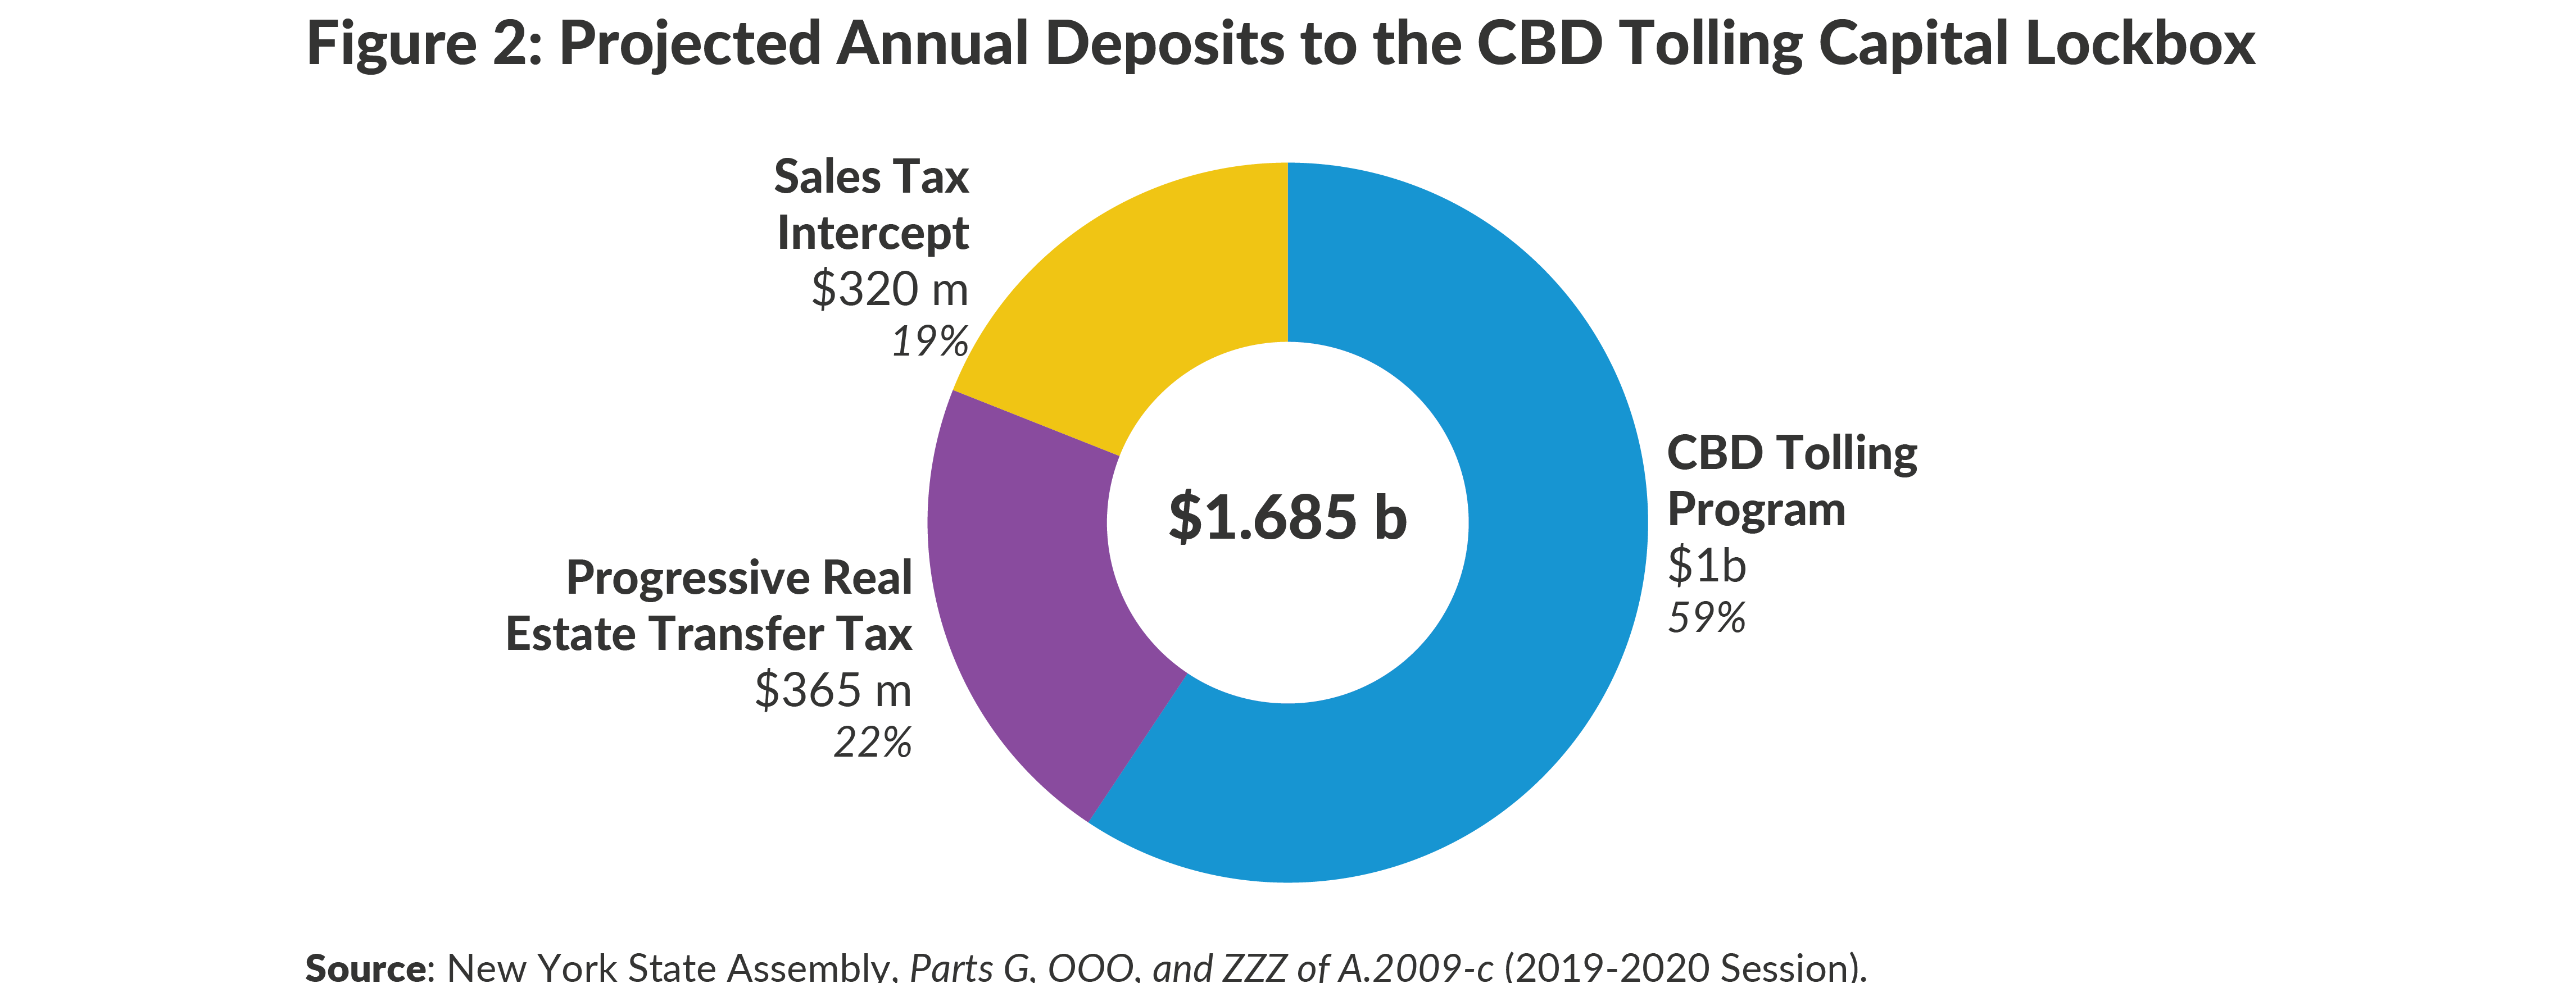 Figure 2: Projected Annual Deposits to the CBD Capital Tolling Lockbox